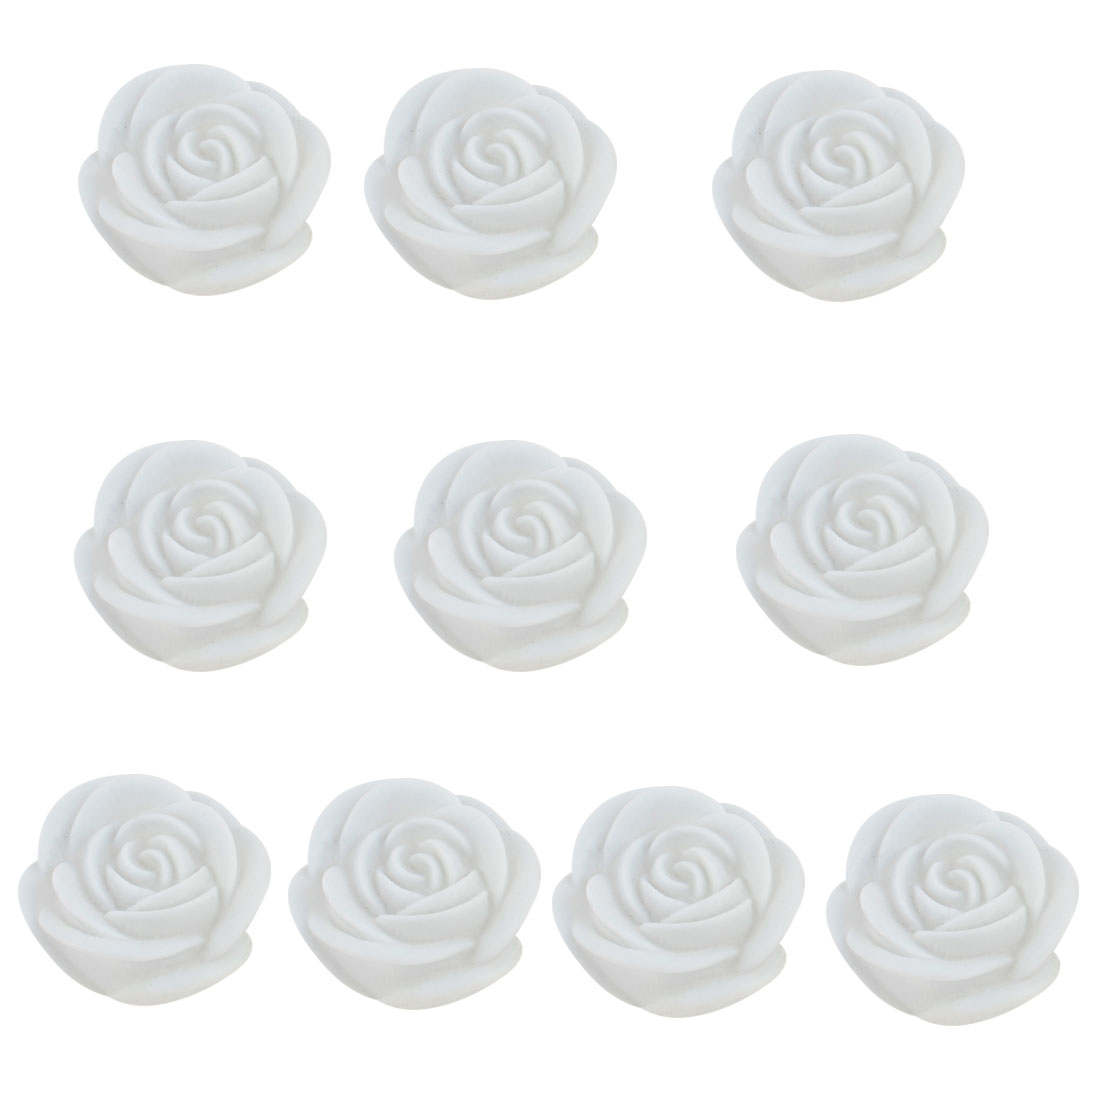 Home Bedroom Decor Battery Powered Color Changing Rose Lamps Desk Light 10 Pcs